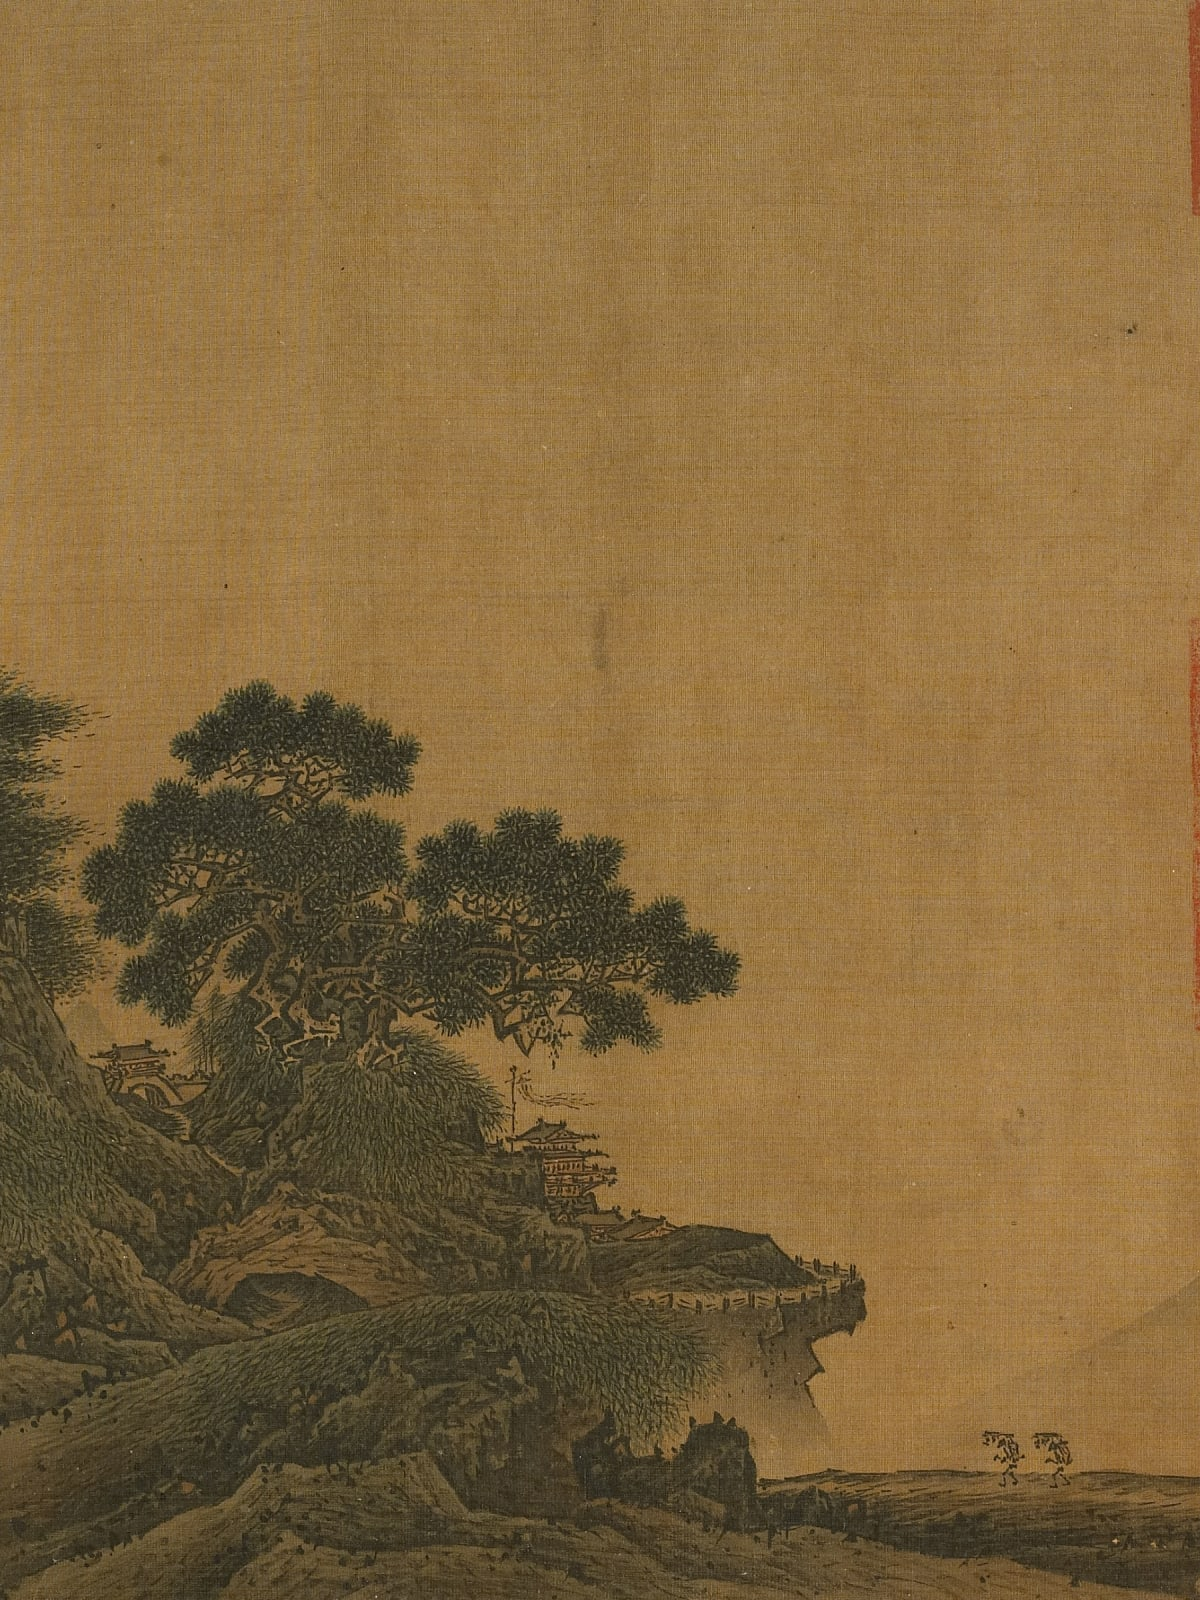 Jia Shigu, Ancient temple in mountain pass, at Museum of Fine Arts